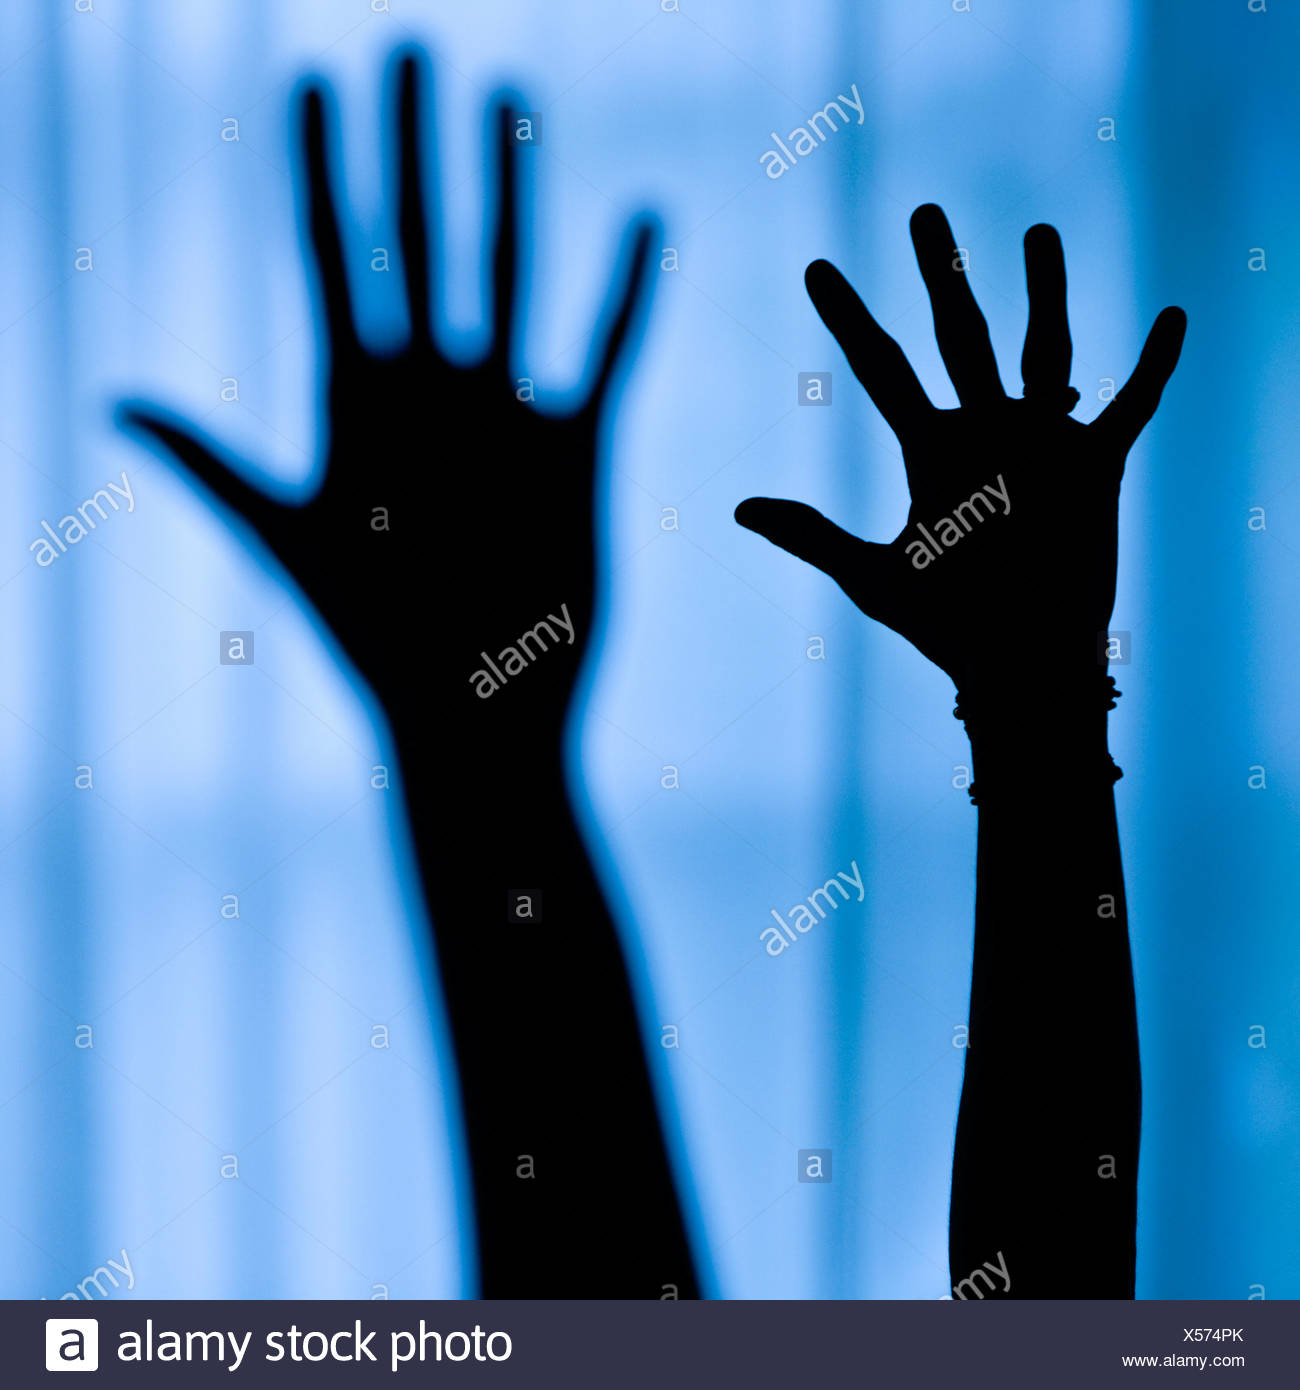 Silhouette of a person's arm raised in yoga pose - Stock Image